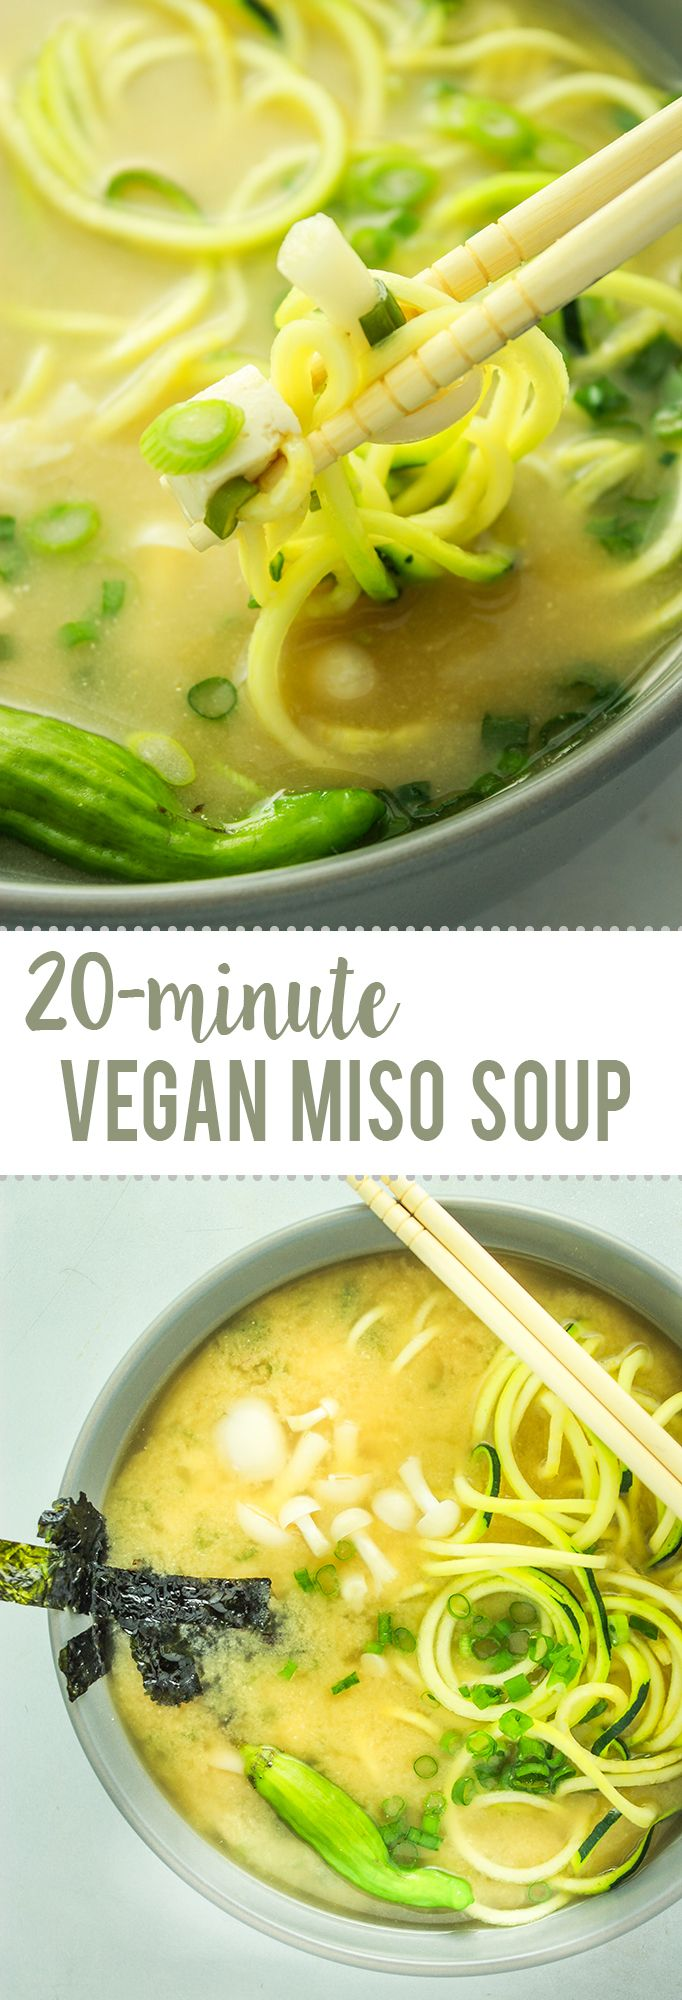 Easy Vegan Miso Soup – LIFE saving recipe. It chases away colds, stuffy noses, and winter blues. Ready in 20 minutes!